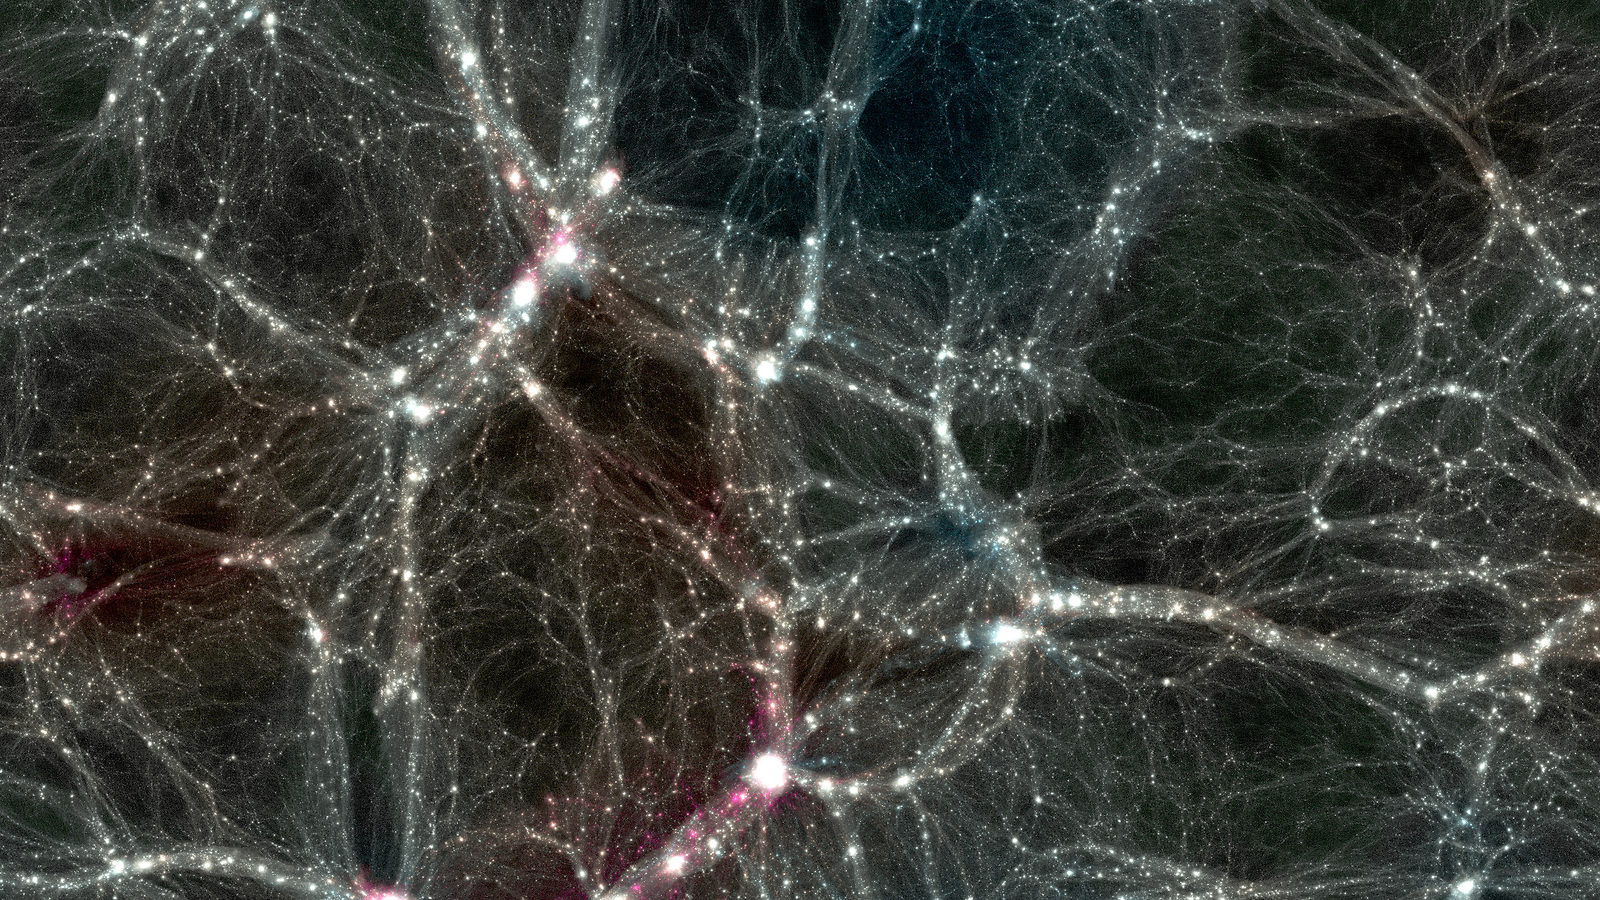 Image of trillion particles